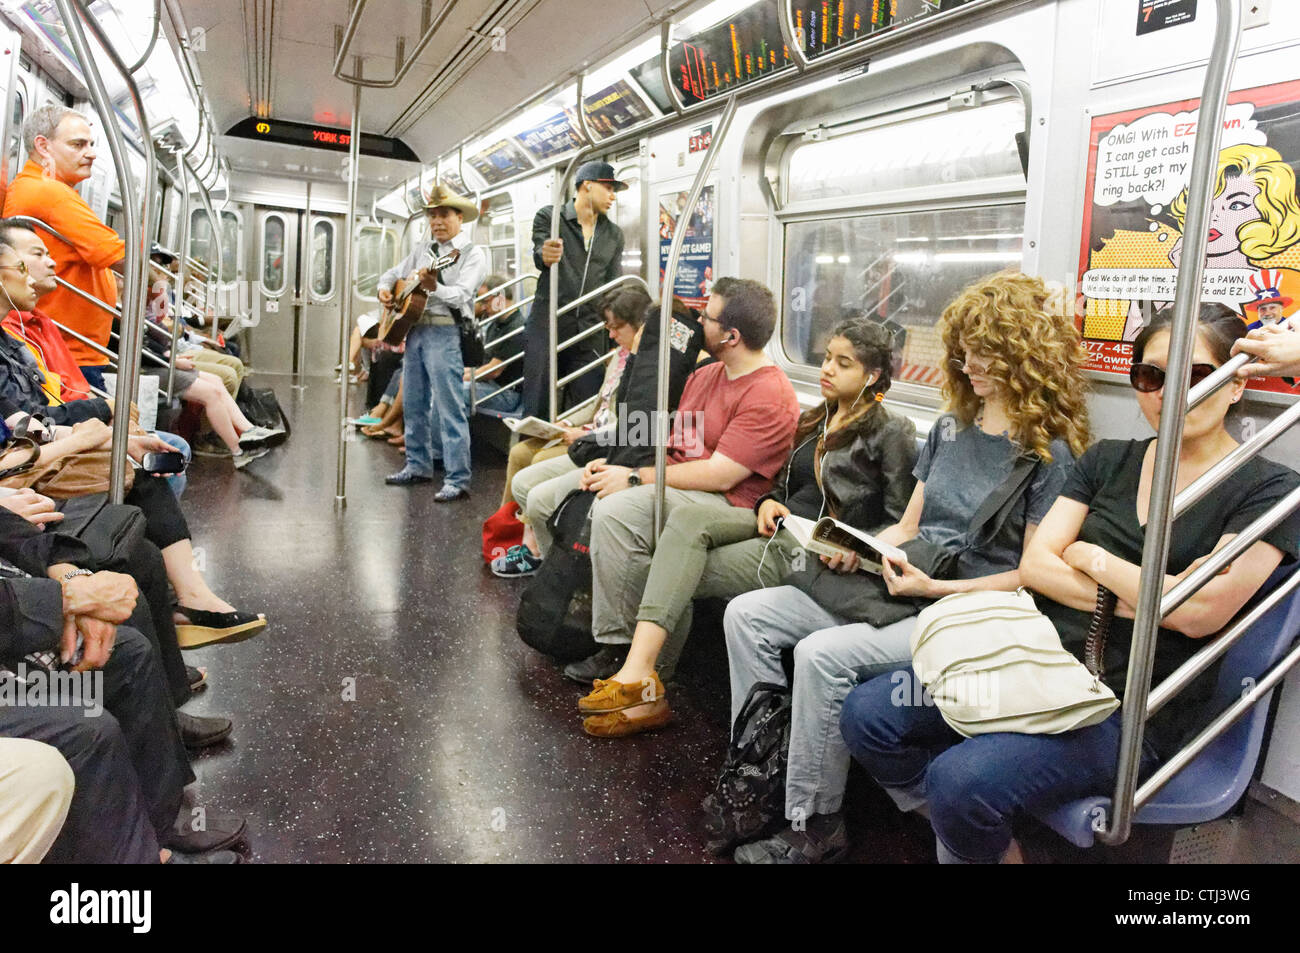 People in a Subway Train in New York Stock Photo, Royalty ...